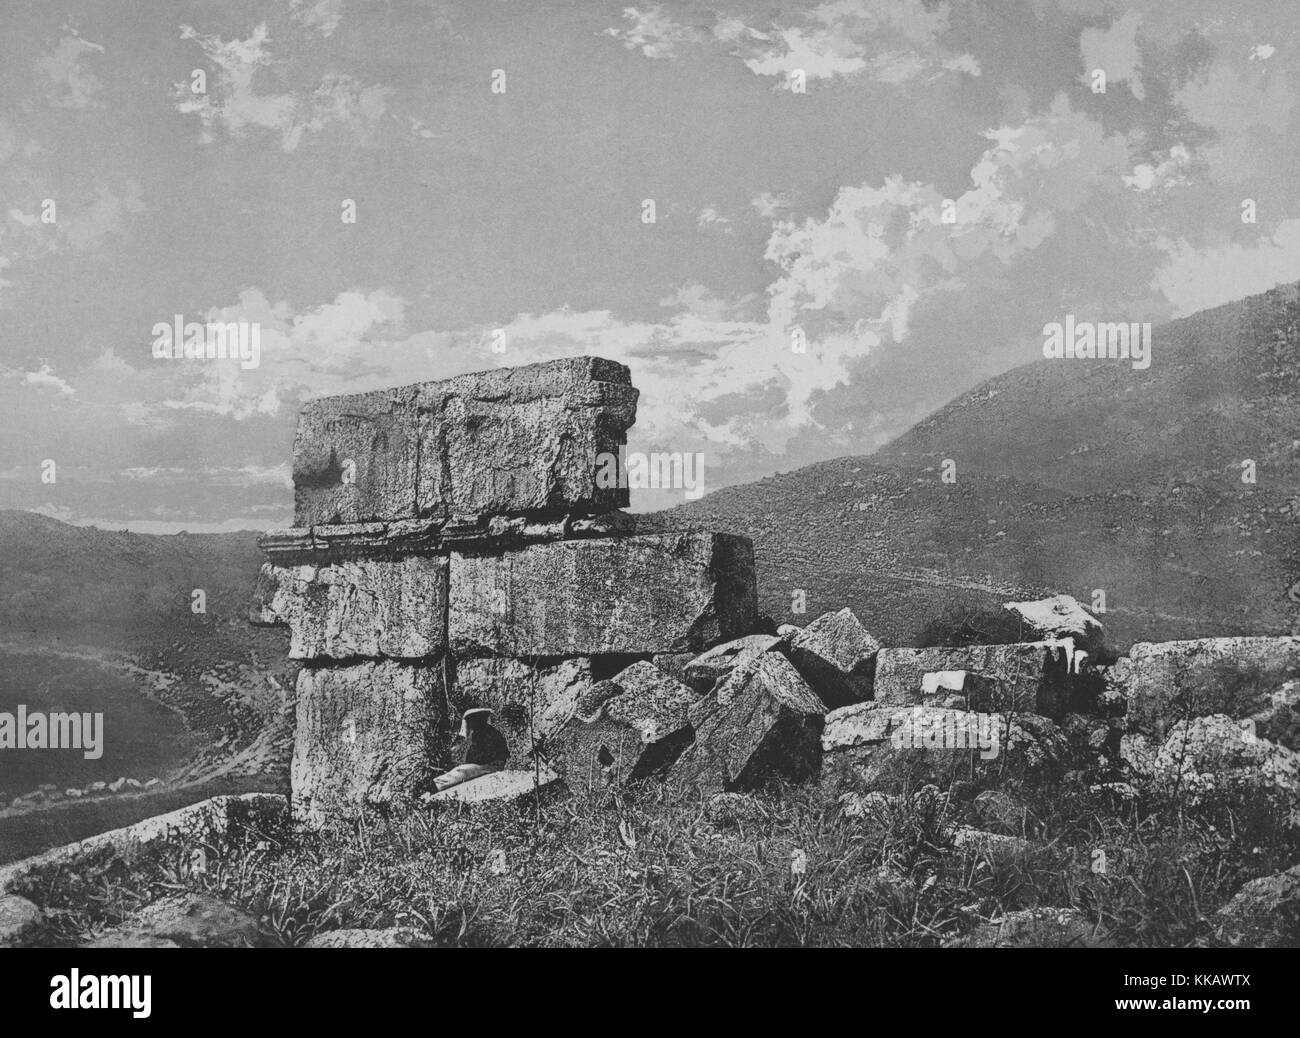 A photograph of ruins standing near the city of Iraq Al-Amir, the ruins are left from structures built during the - Stock Image